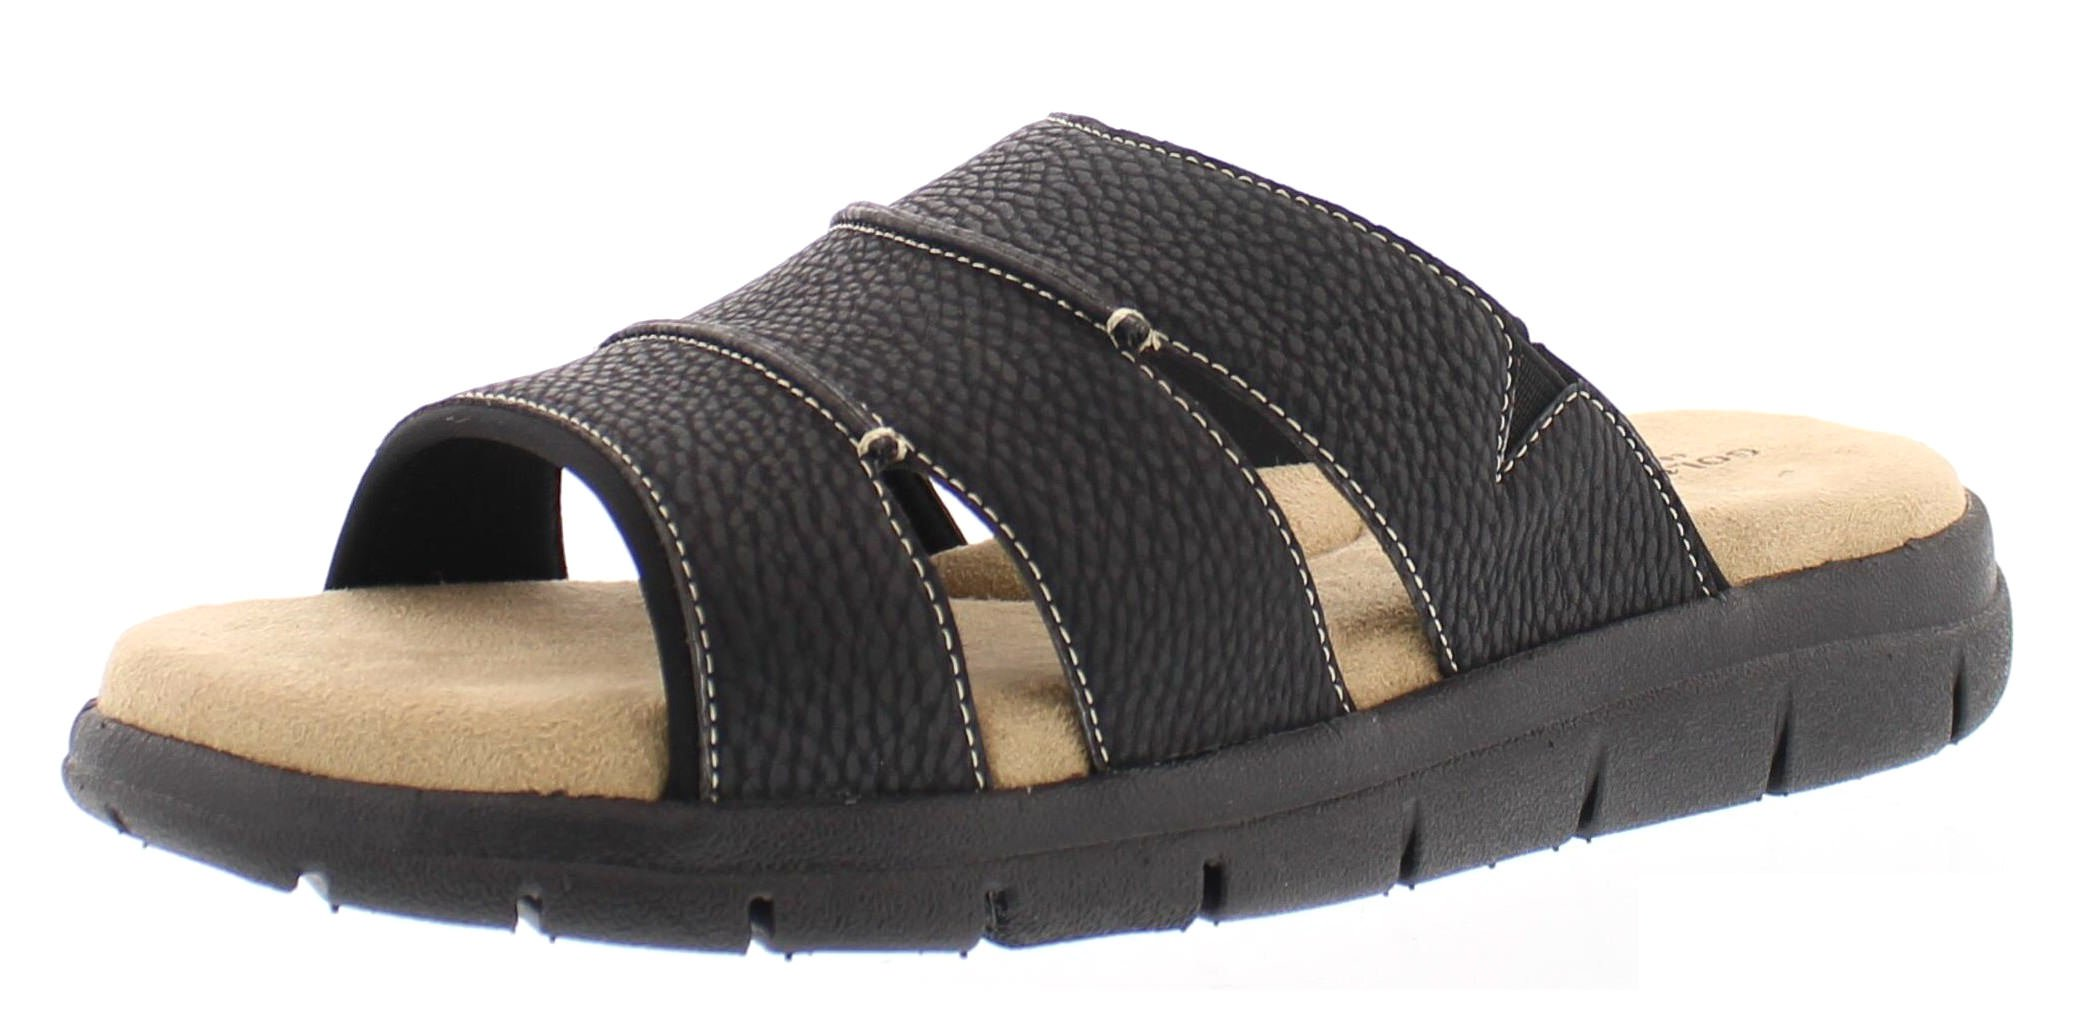 Gold Toe Men's Harbour Casual Outdoor Fisherman Sandal Slip On Open Toe Beach Slides Flats Water Shoes Black 10.5D US